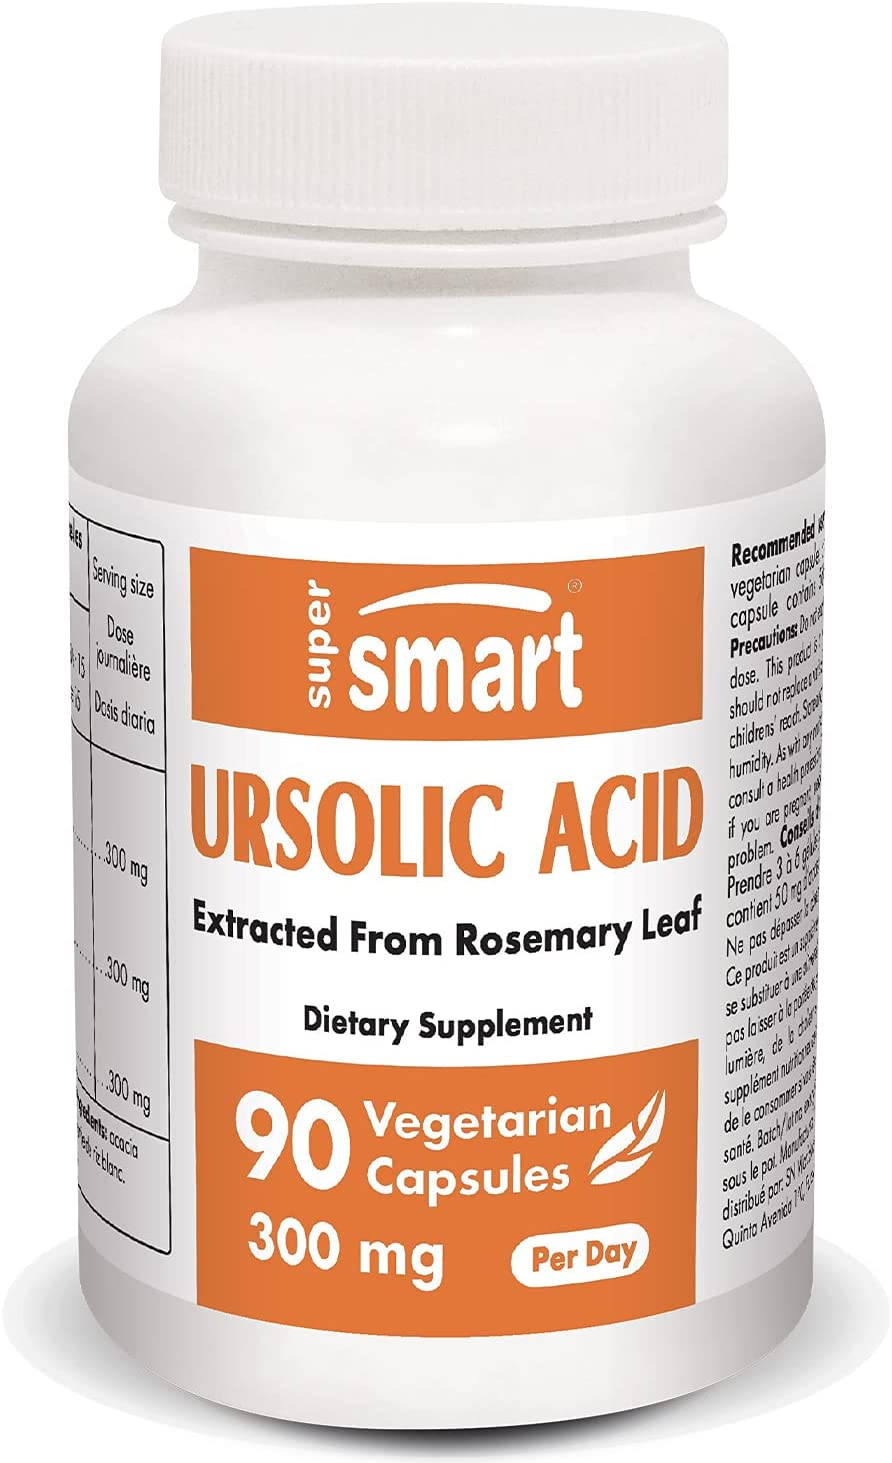 Supersmart - Ursolic Acid 300 mg Per Day - Rosemary Leaf Extract - Promotes Muscle Mass & Strength | Non-GMO & Gluten Free - 90 Vegetarian Capsules